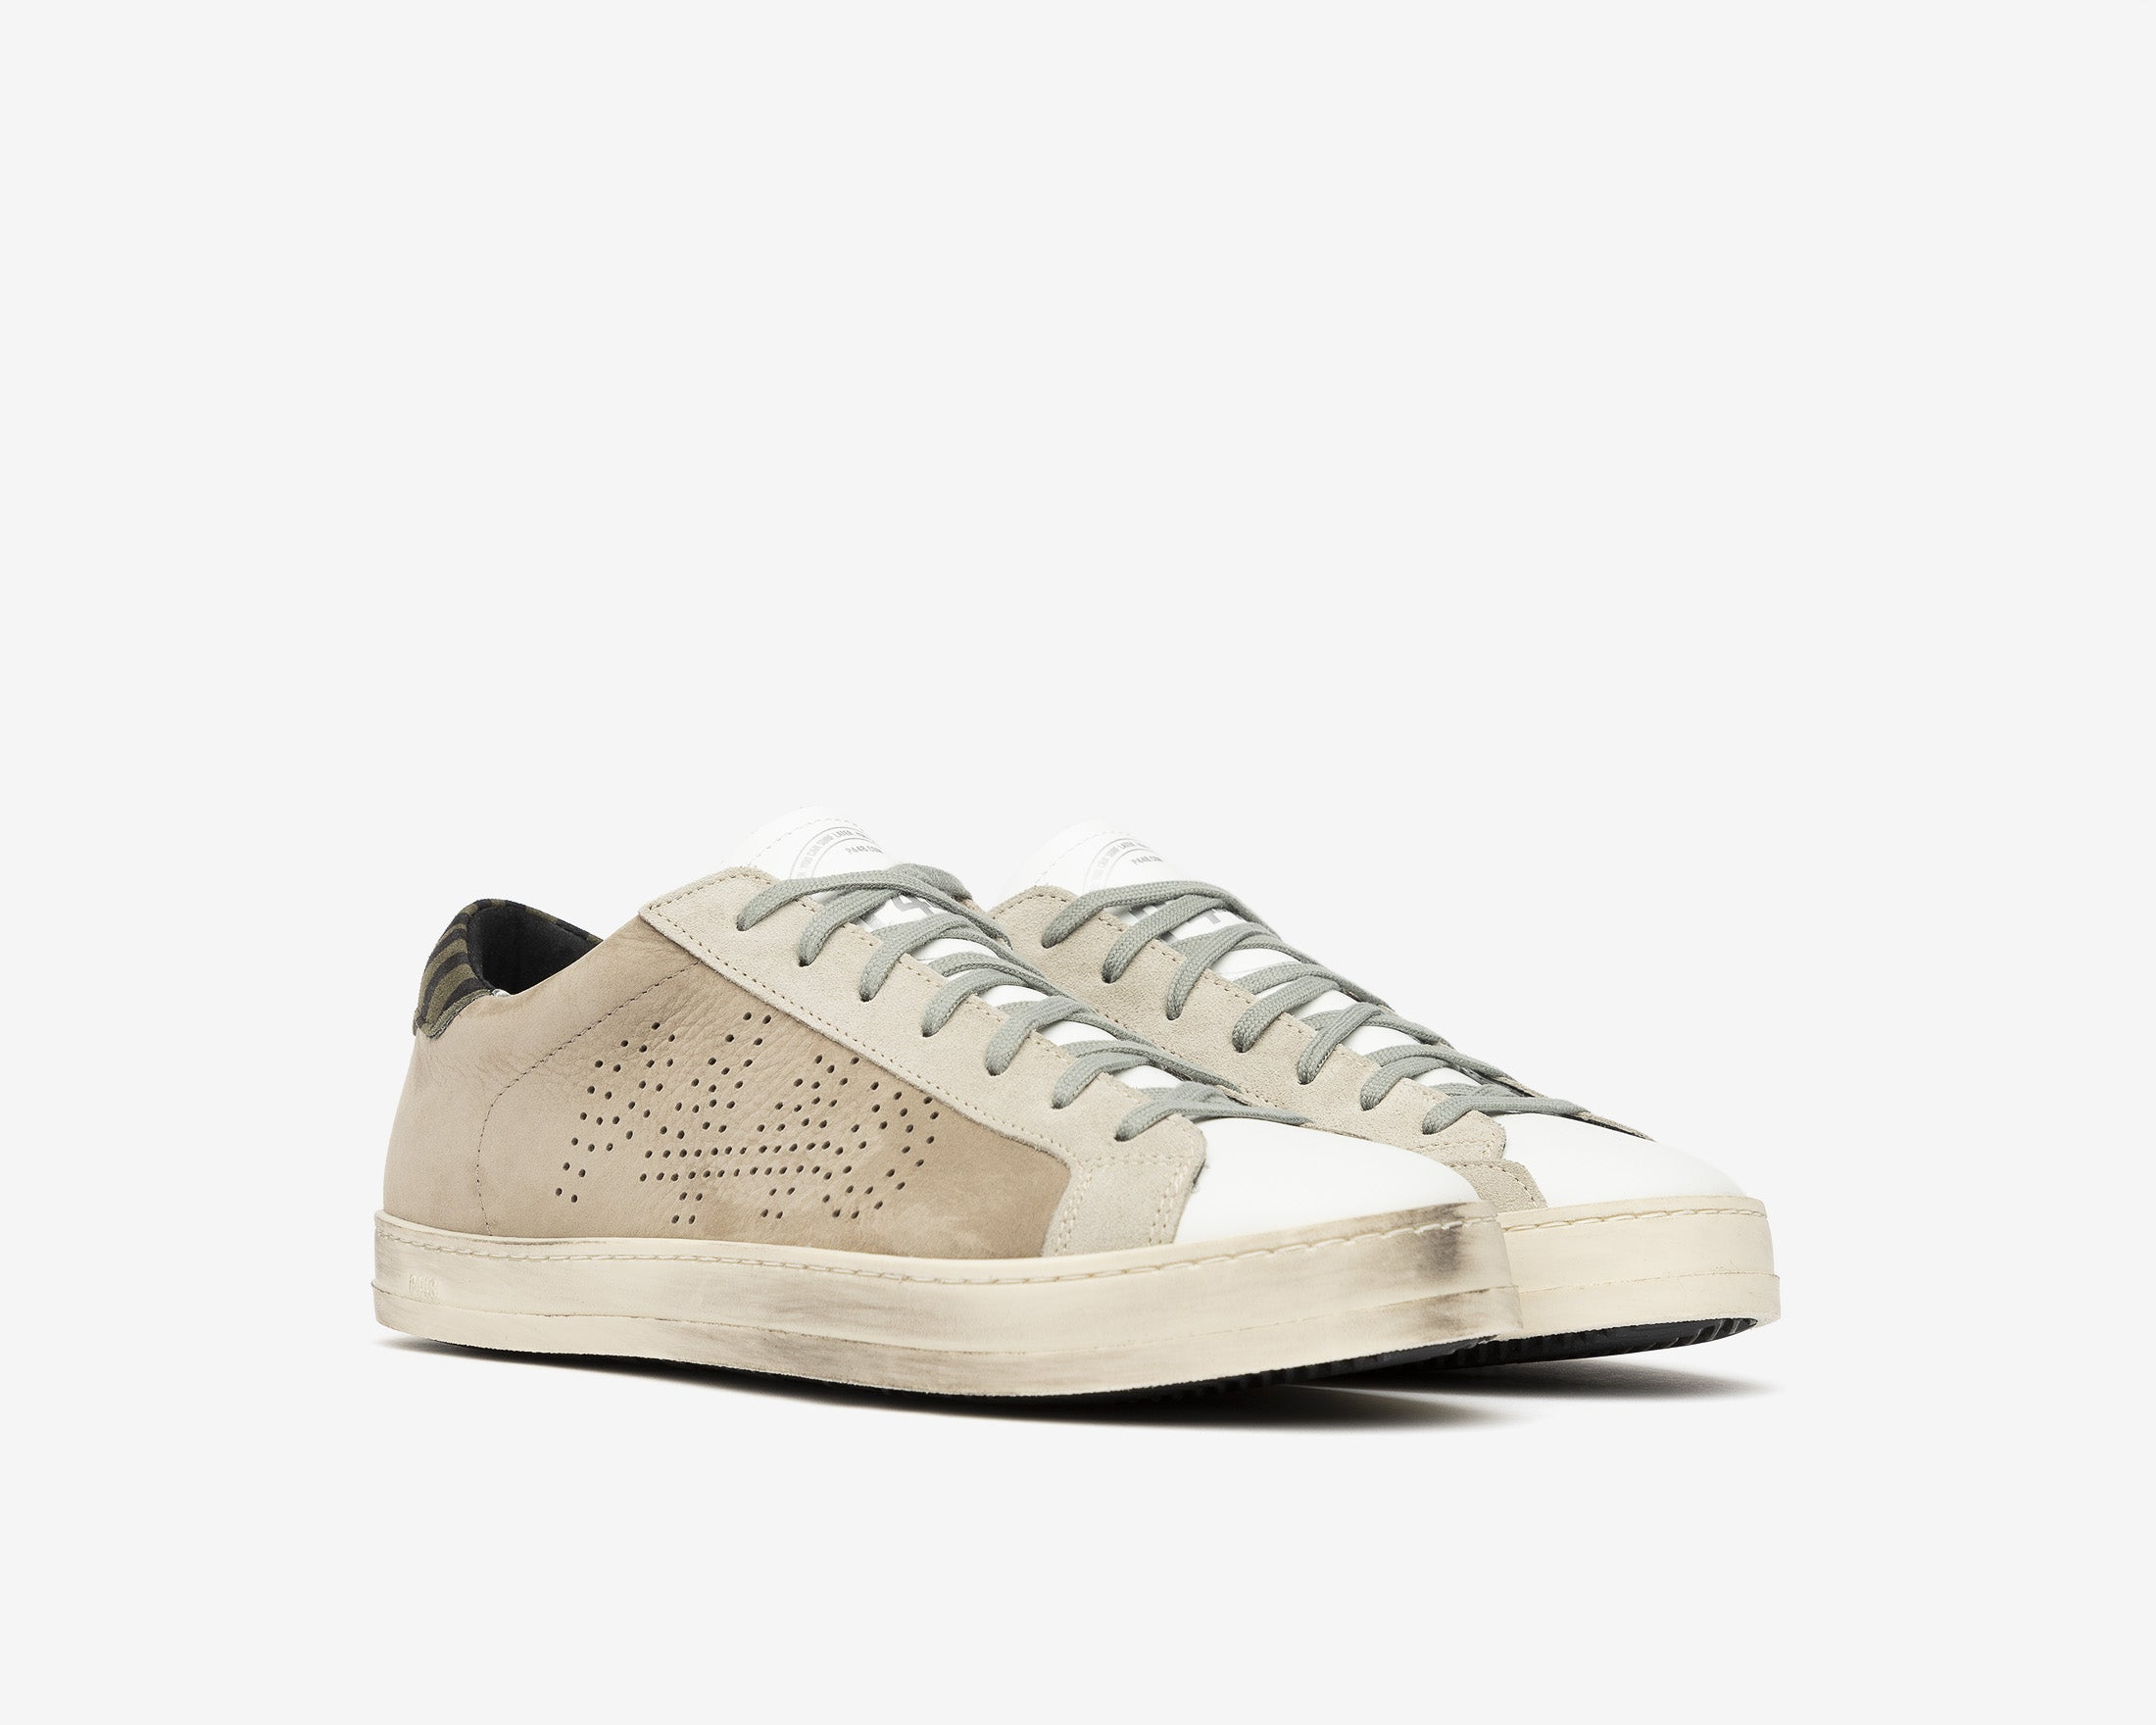 John Low-Top Sneaker in Gray NabJohn Low-Top Sneaker in Gray Nubuck - Side